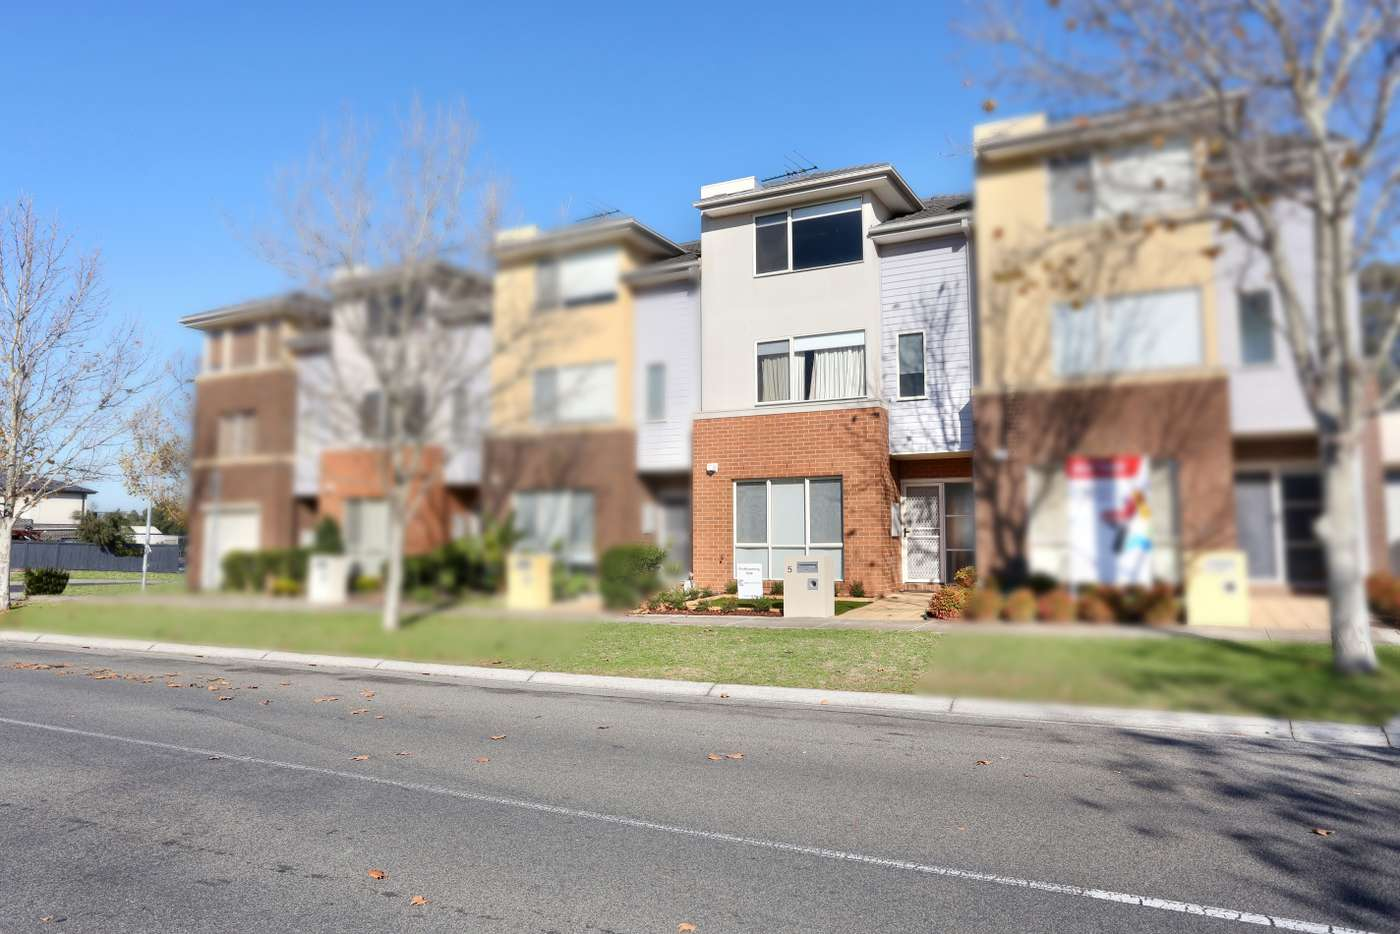 Main view of Homely townhouse listing, 5 Wentworth Drive, Taylors Lakes VIC 3038